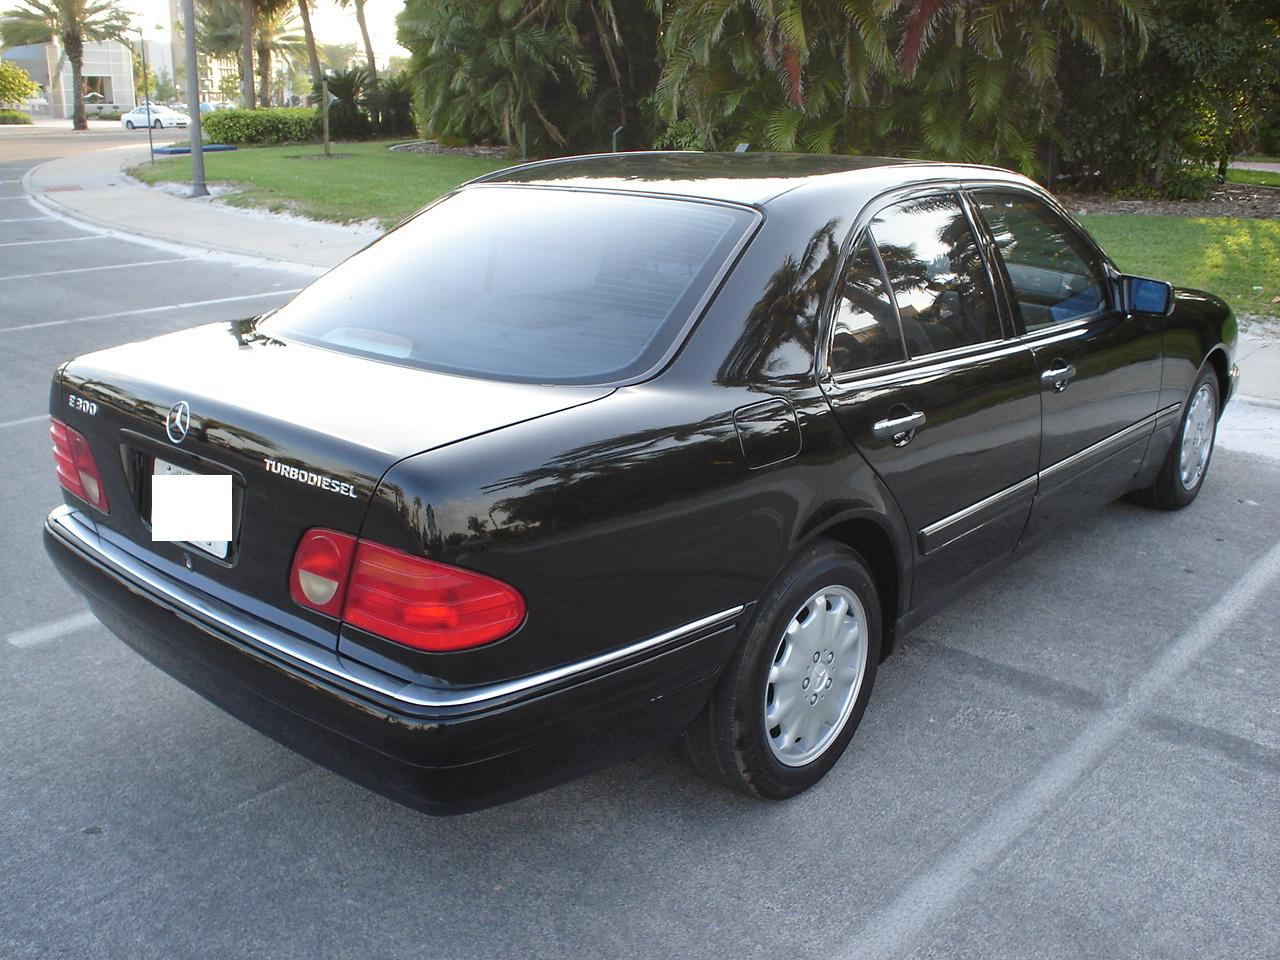 2010 mercedes benz e320 review for 1999 mercedes benz e300 turbo diesel for sale